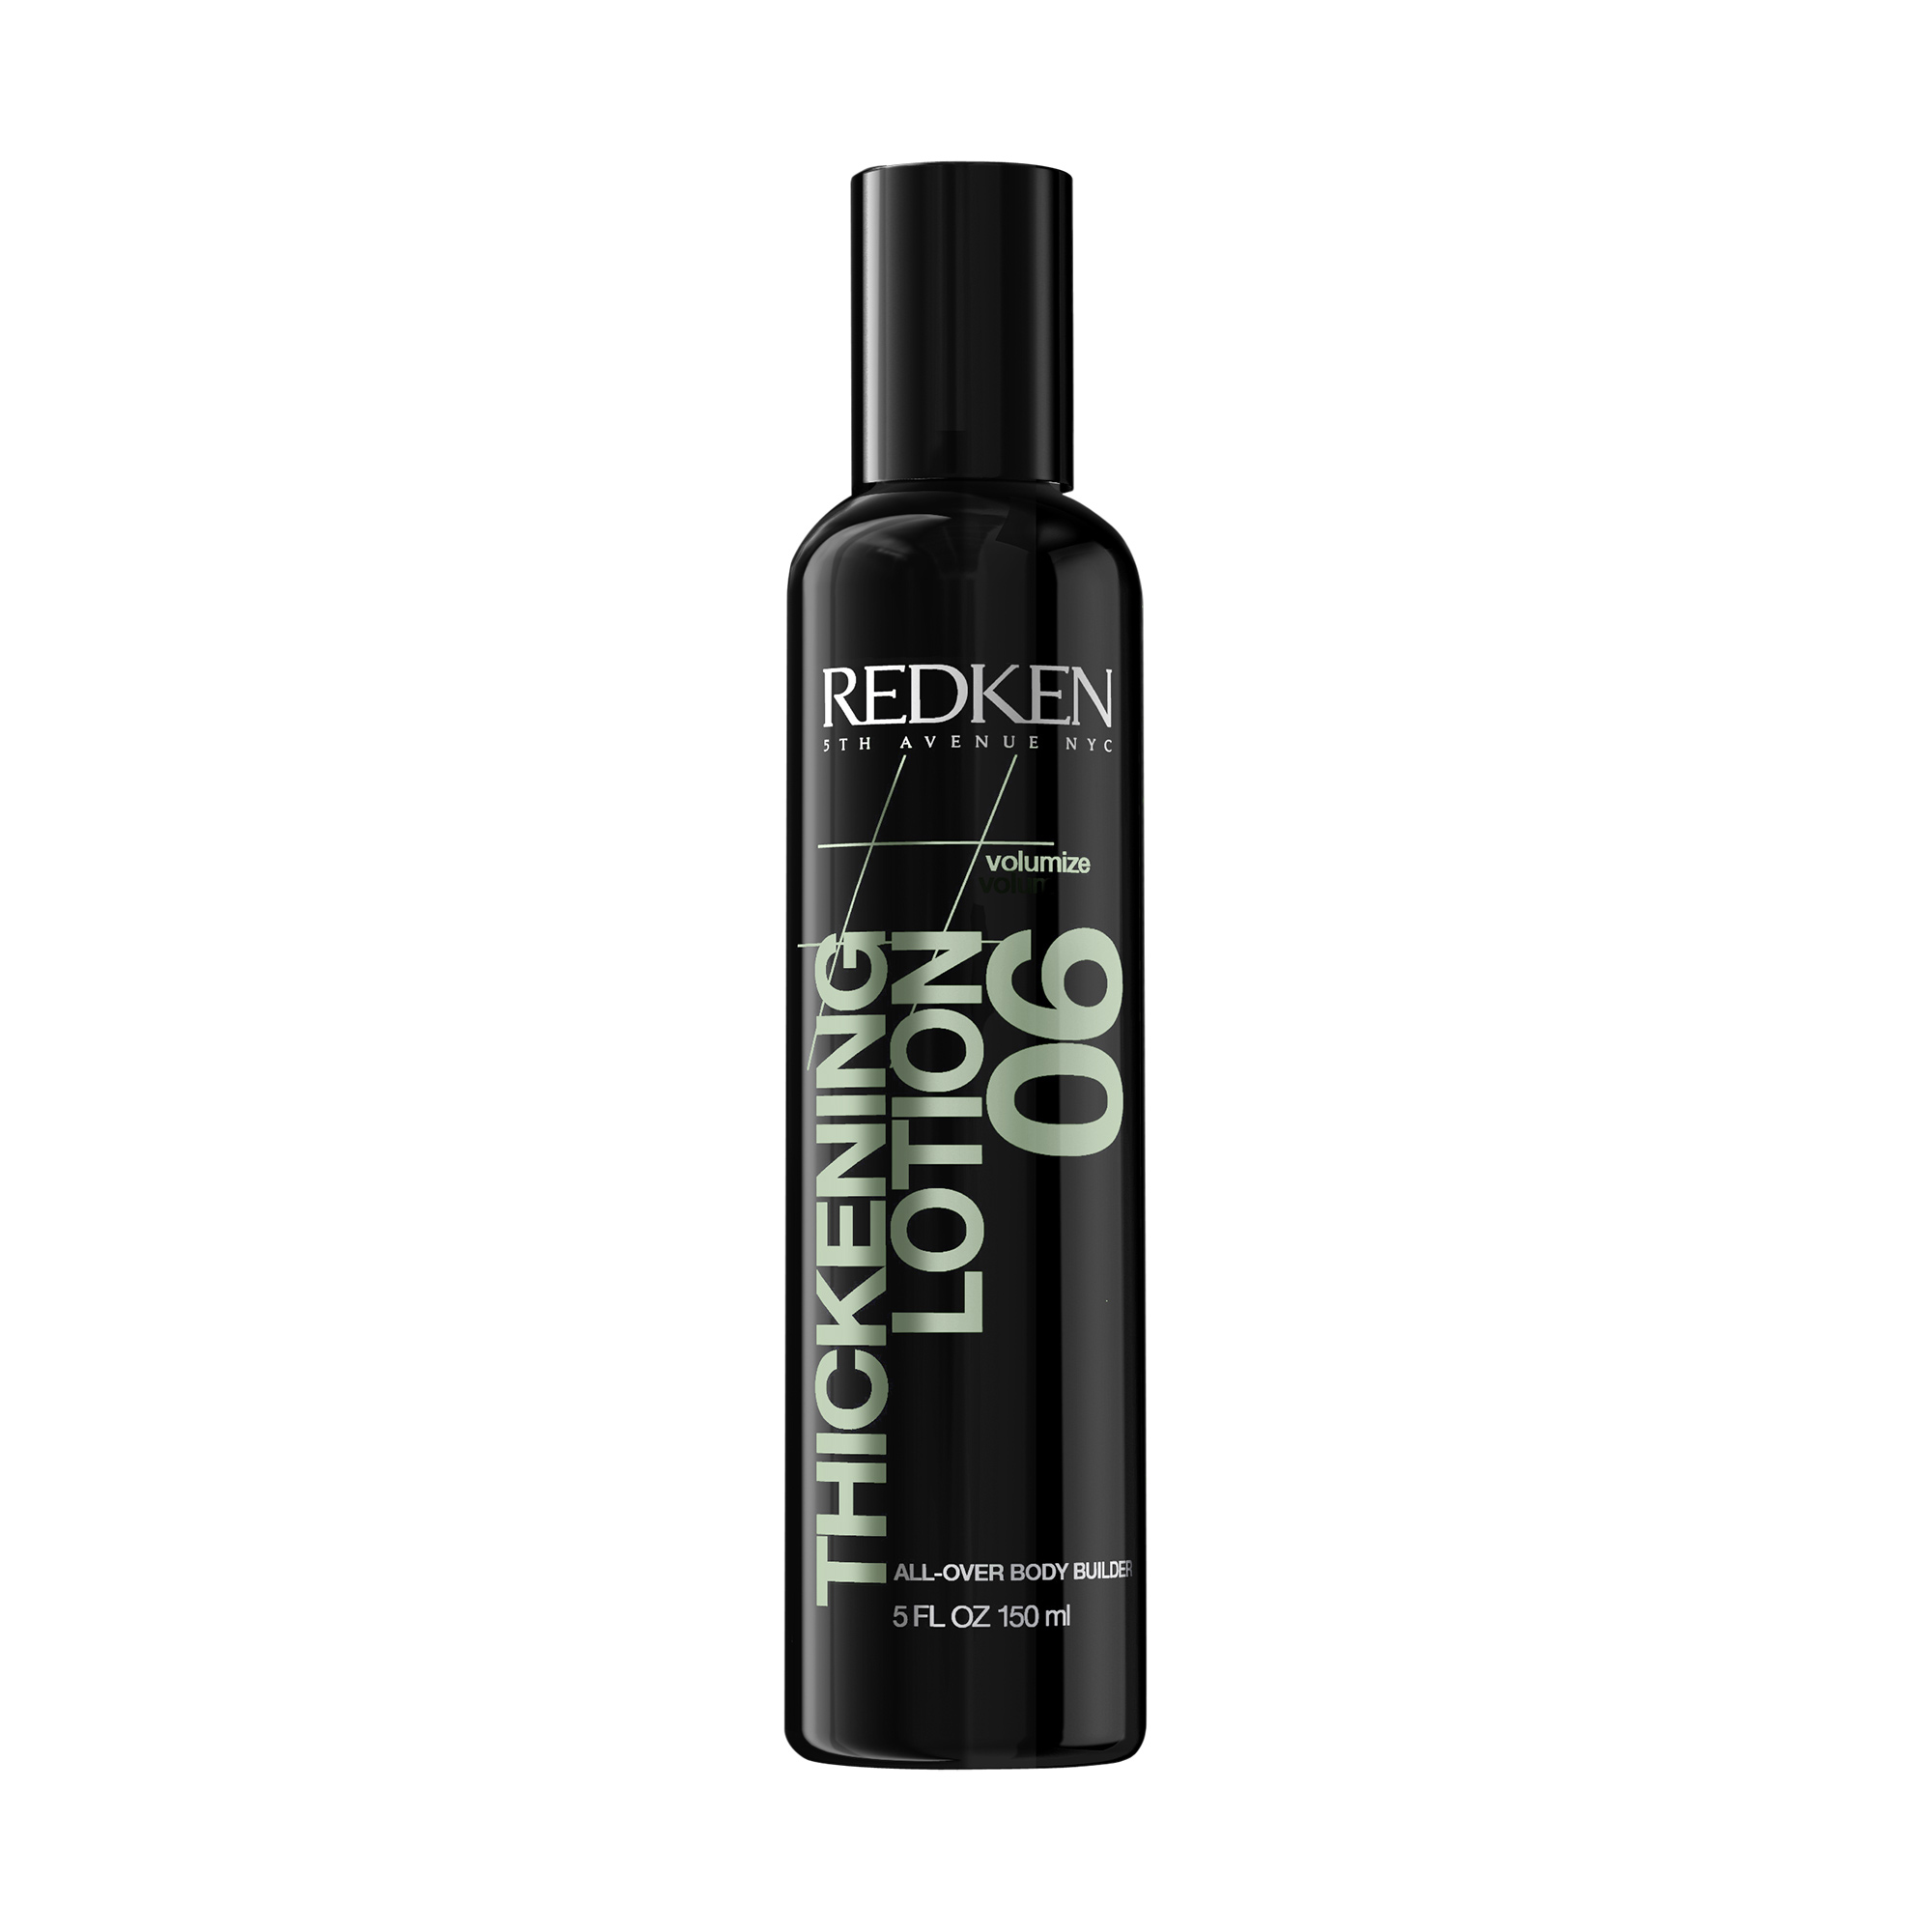 Styling Volumize Thickening Lotion 06 150 ml